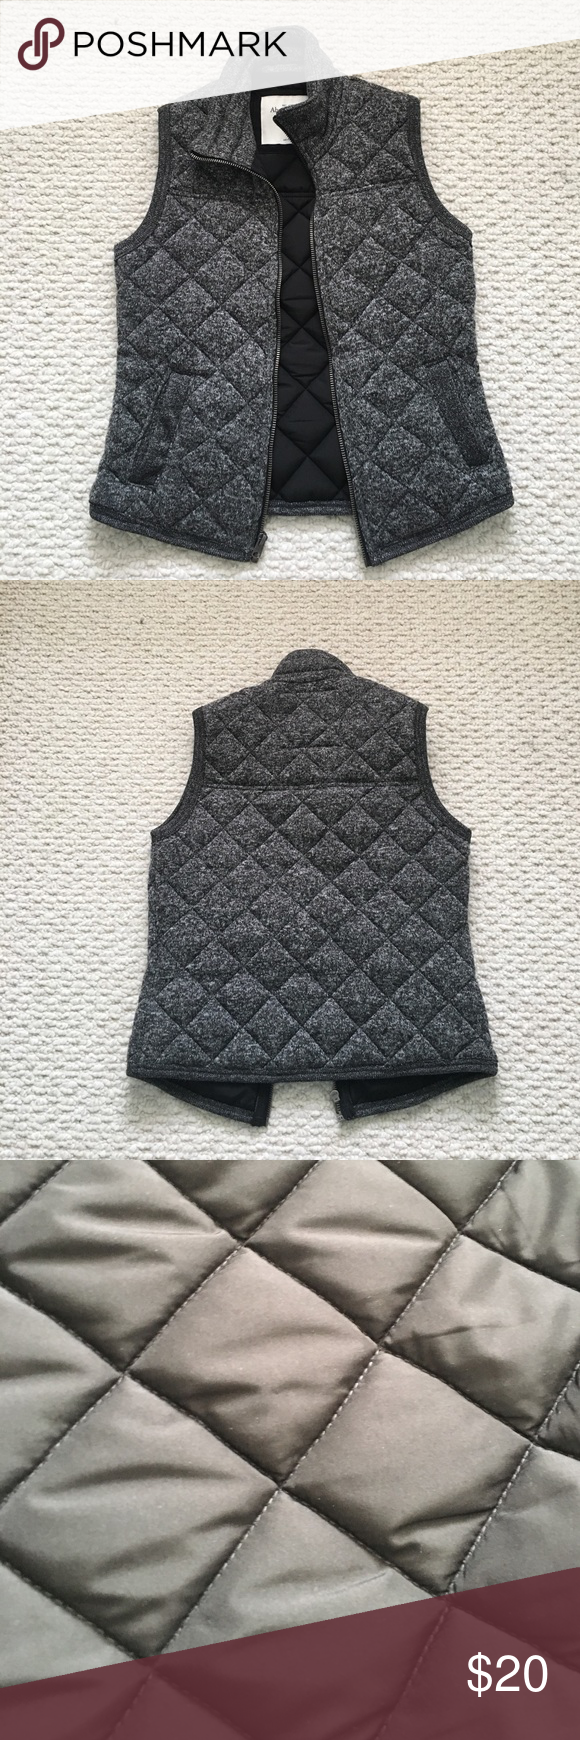 Abercrombie and Fitch quilted vest Grey quilted vest. Very sleek and fashionable. Only worn twice. Abercrombie & Fitch Jackets & Coats Vests